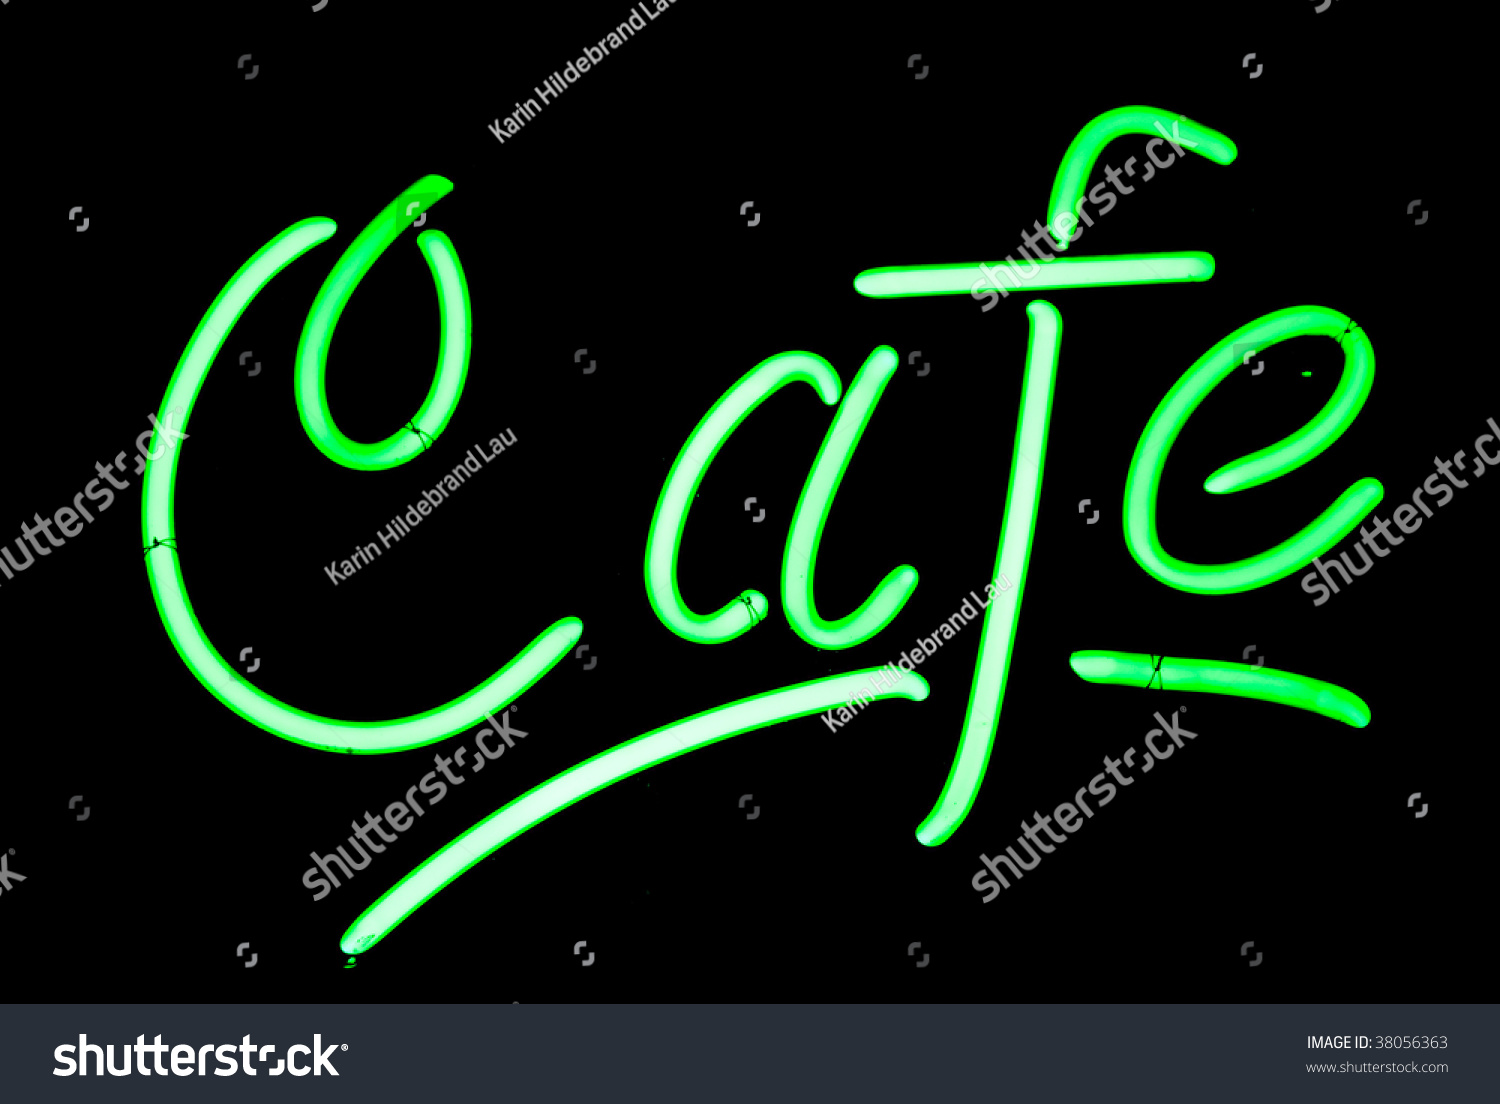 Green Cafe Neon Sign Isolated On Stock Photo 38056363